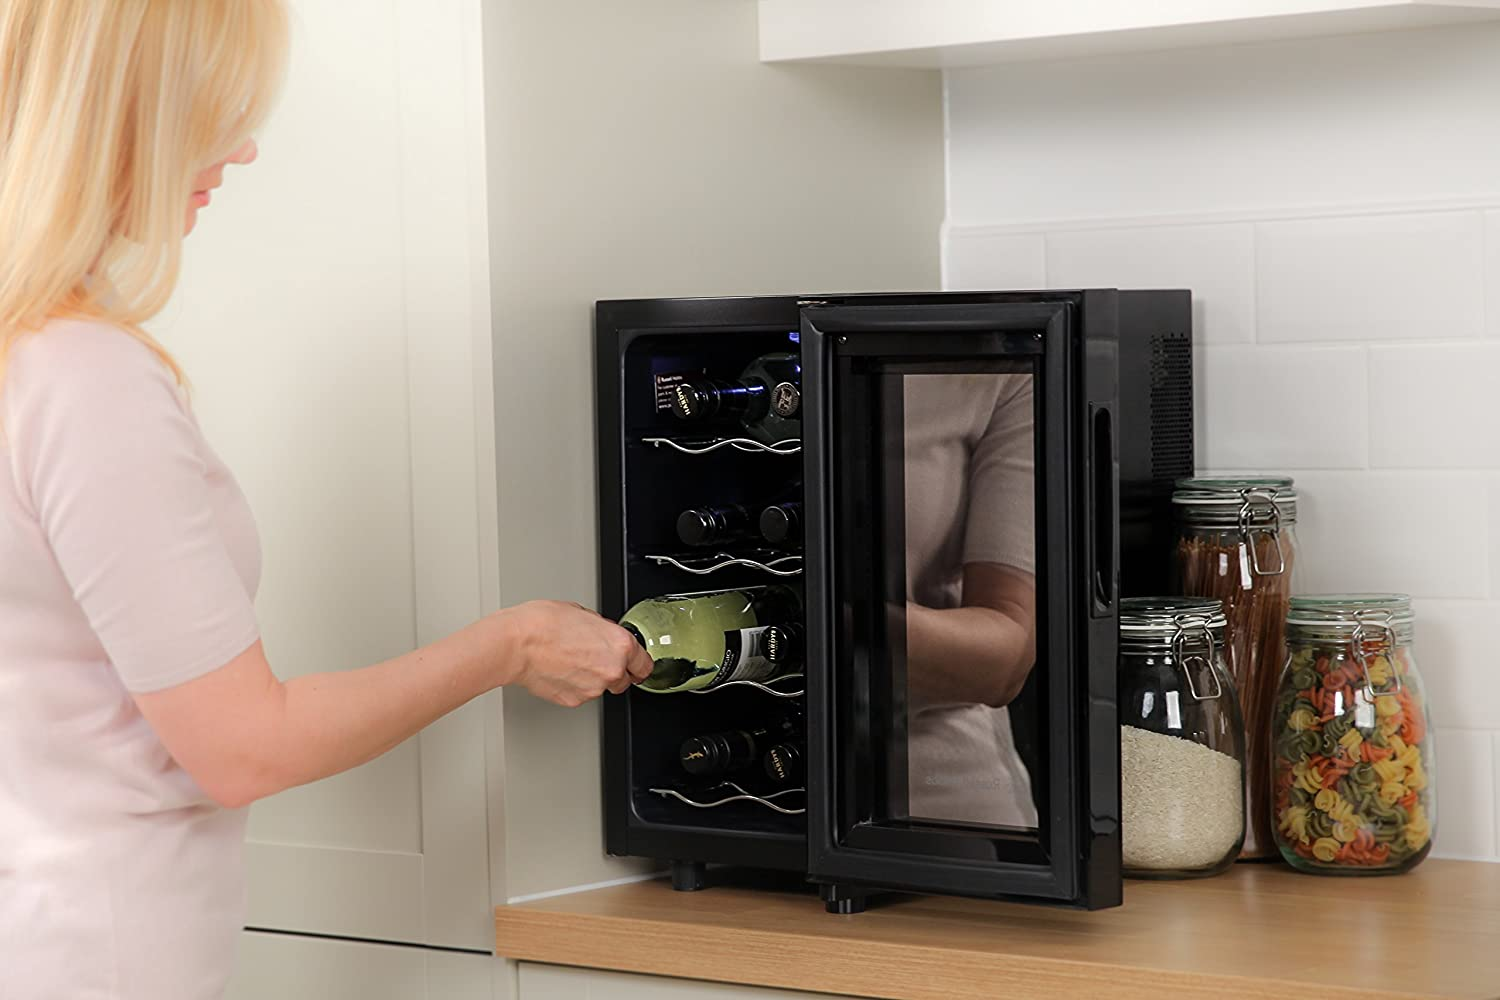 russell hobbs rh8wc2 wine fridge bottle and drinks cooler black brand new ebay. Black Bedroom Furniture Sets. Home Design Ideas